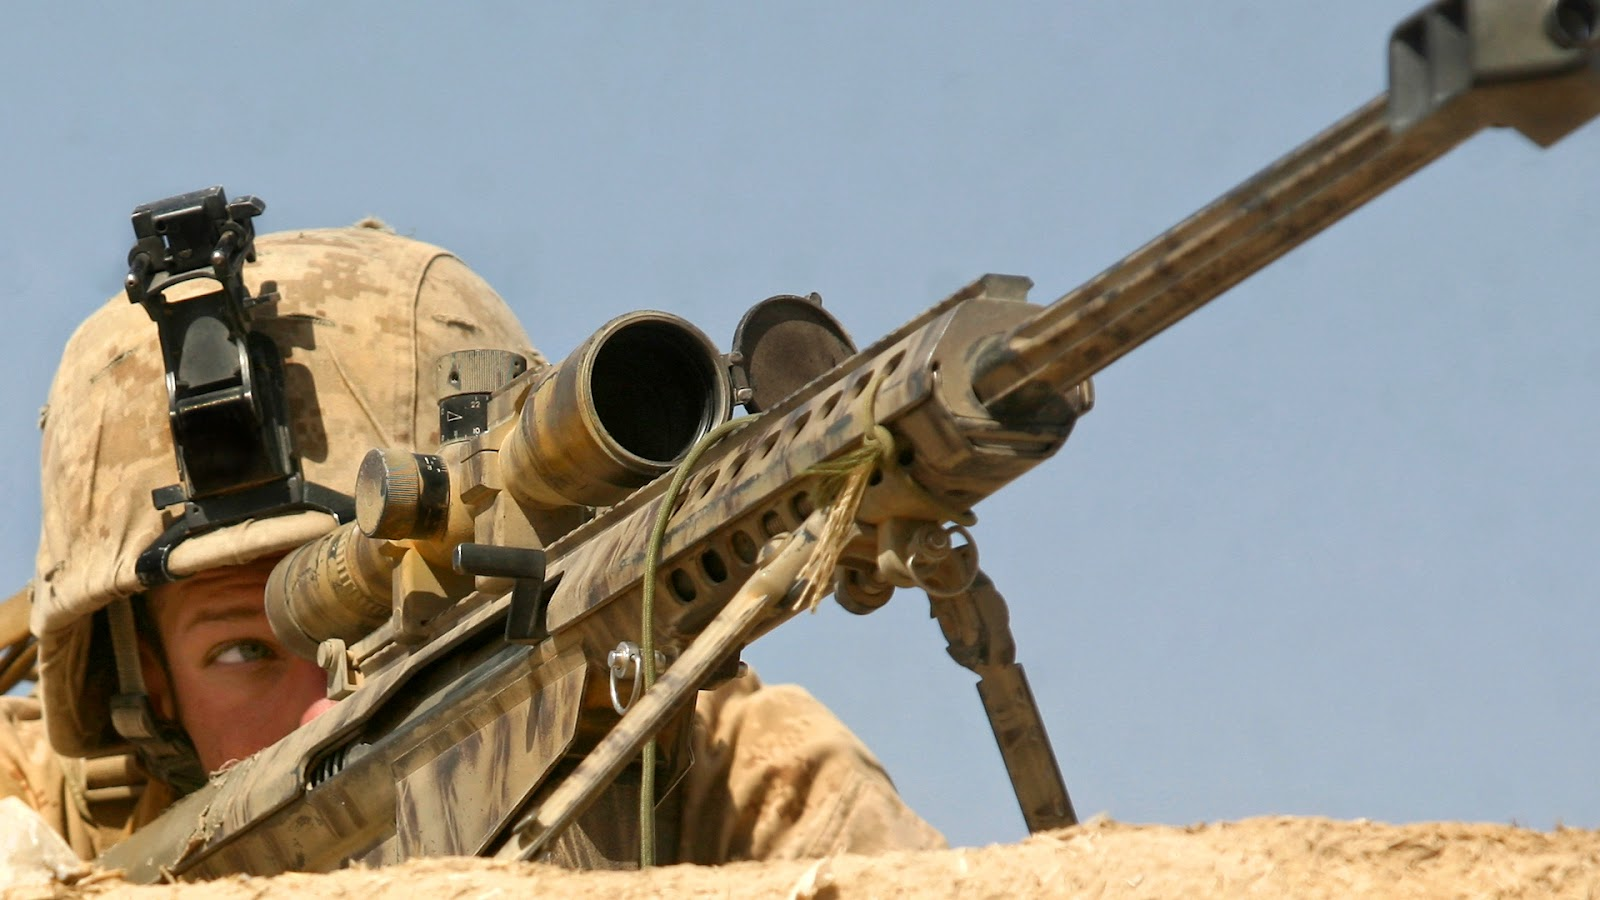 Army Sniper Rifle Wallpaper 1600x900